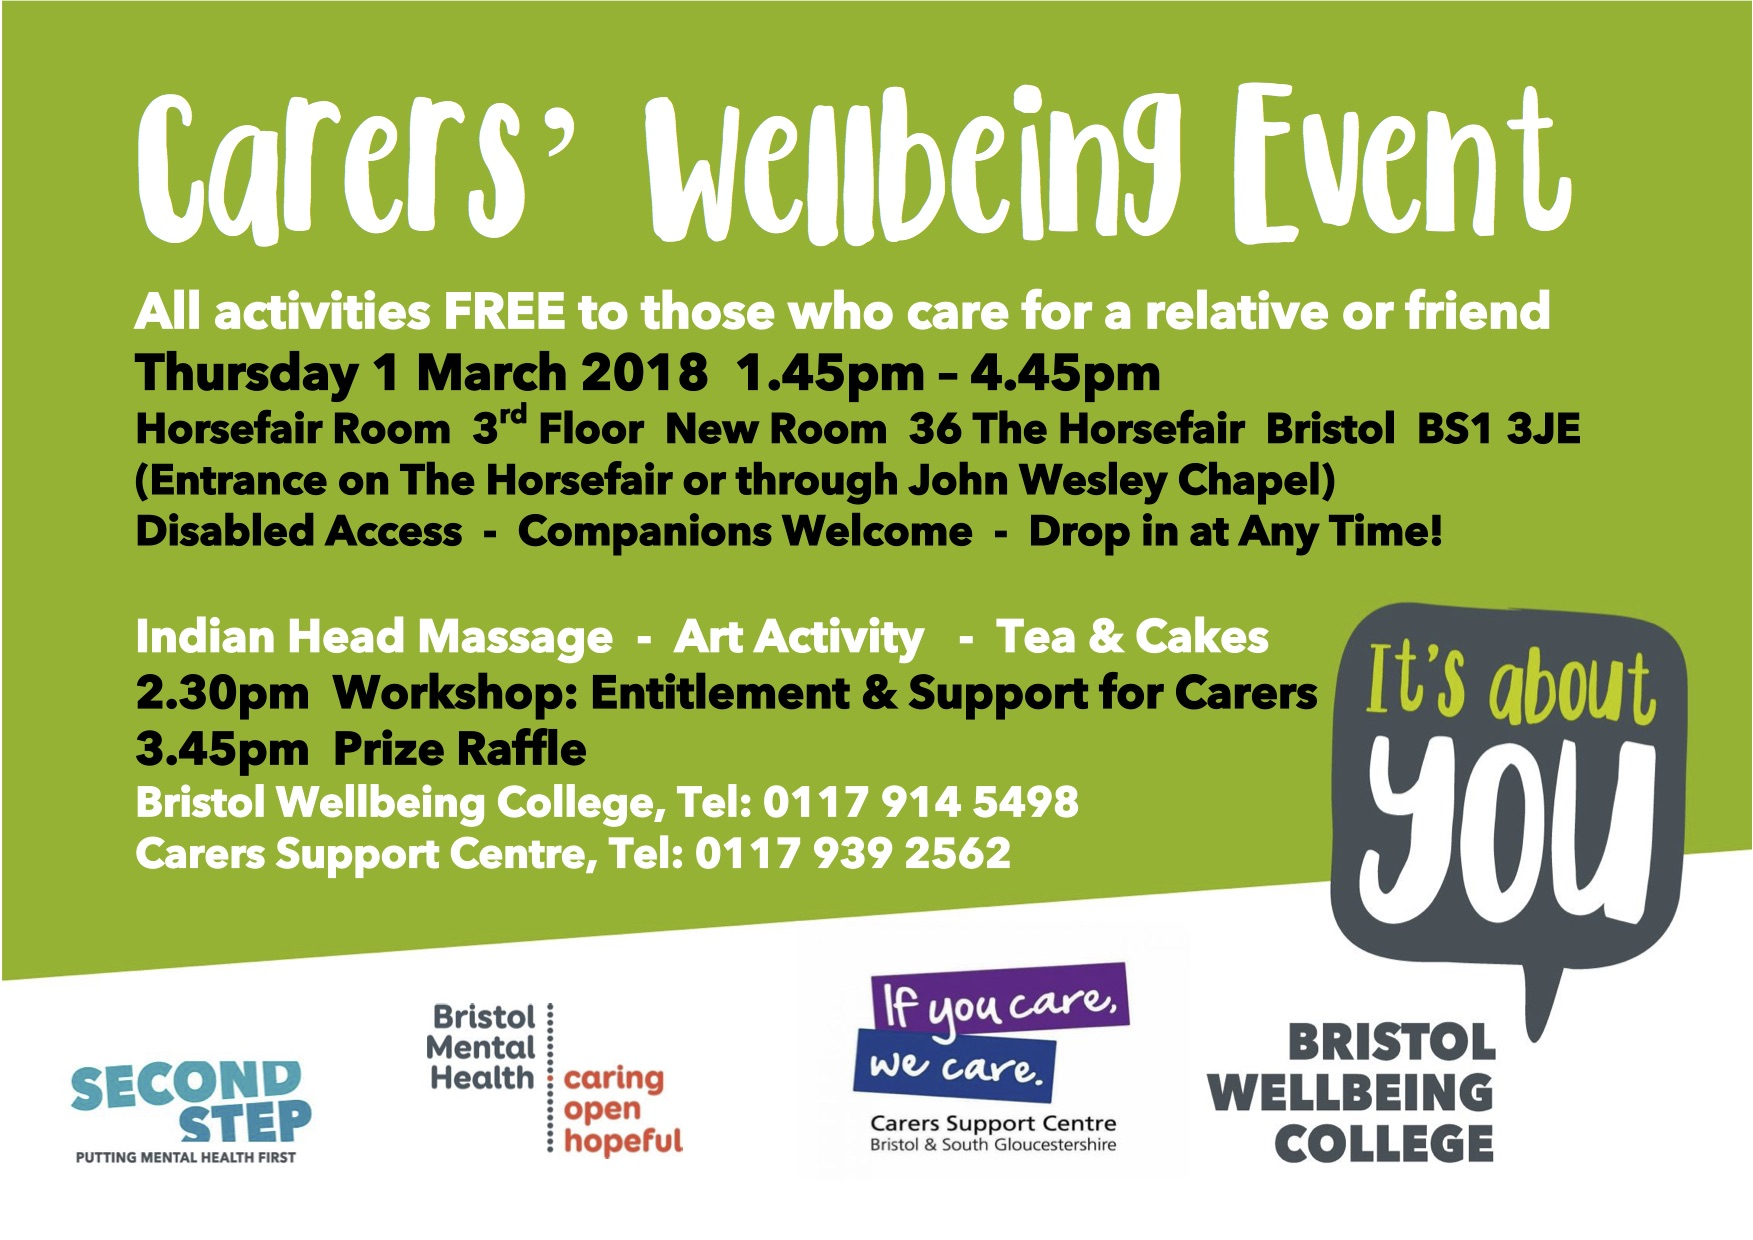 Bristol Wellbeing College Carers Event The New Room Bristol John Wesley S Chapel